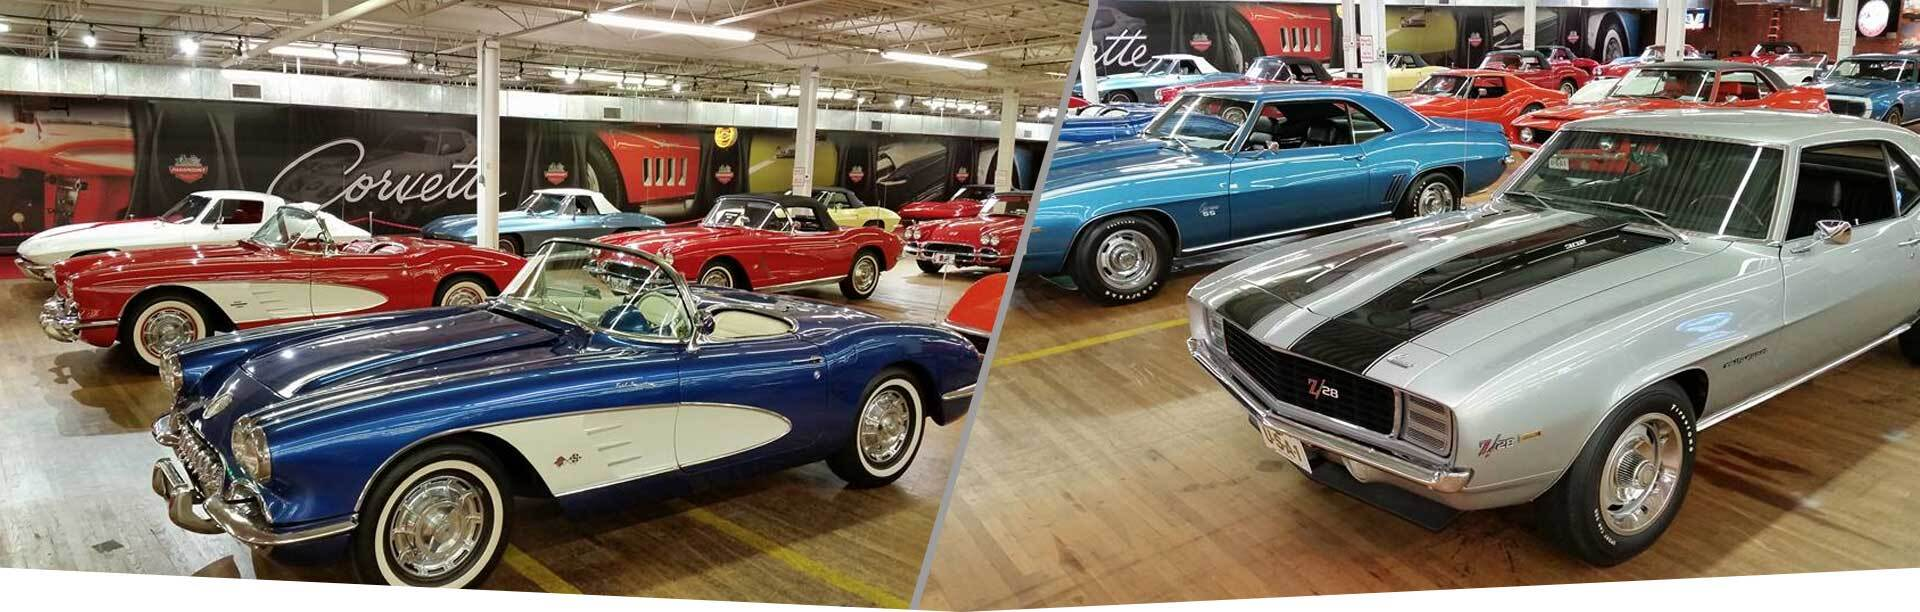 Pre-Owned Classic Vehicles at Auto Palace Classics